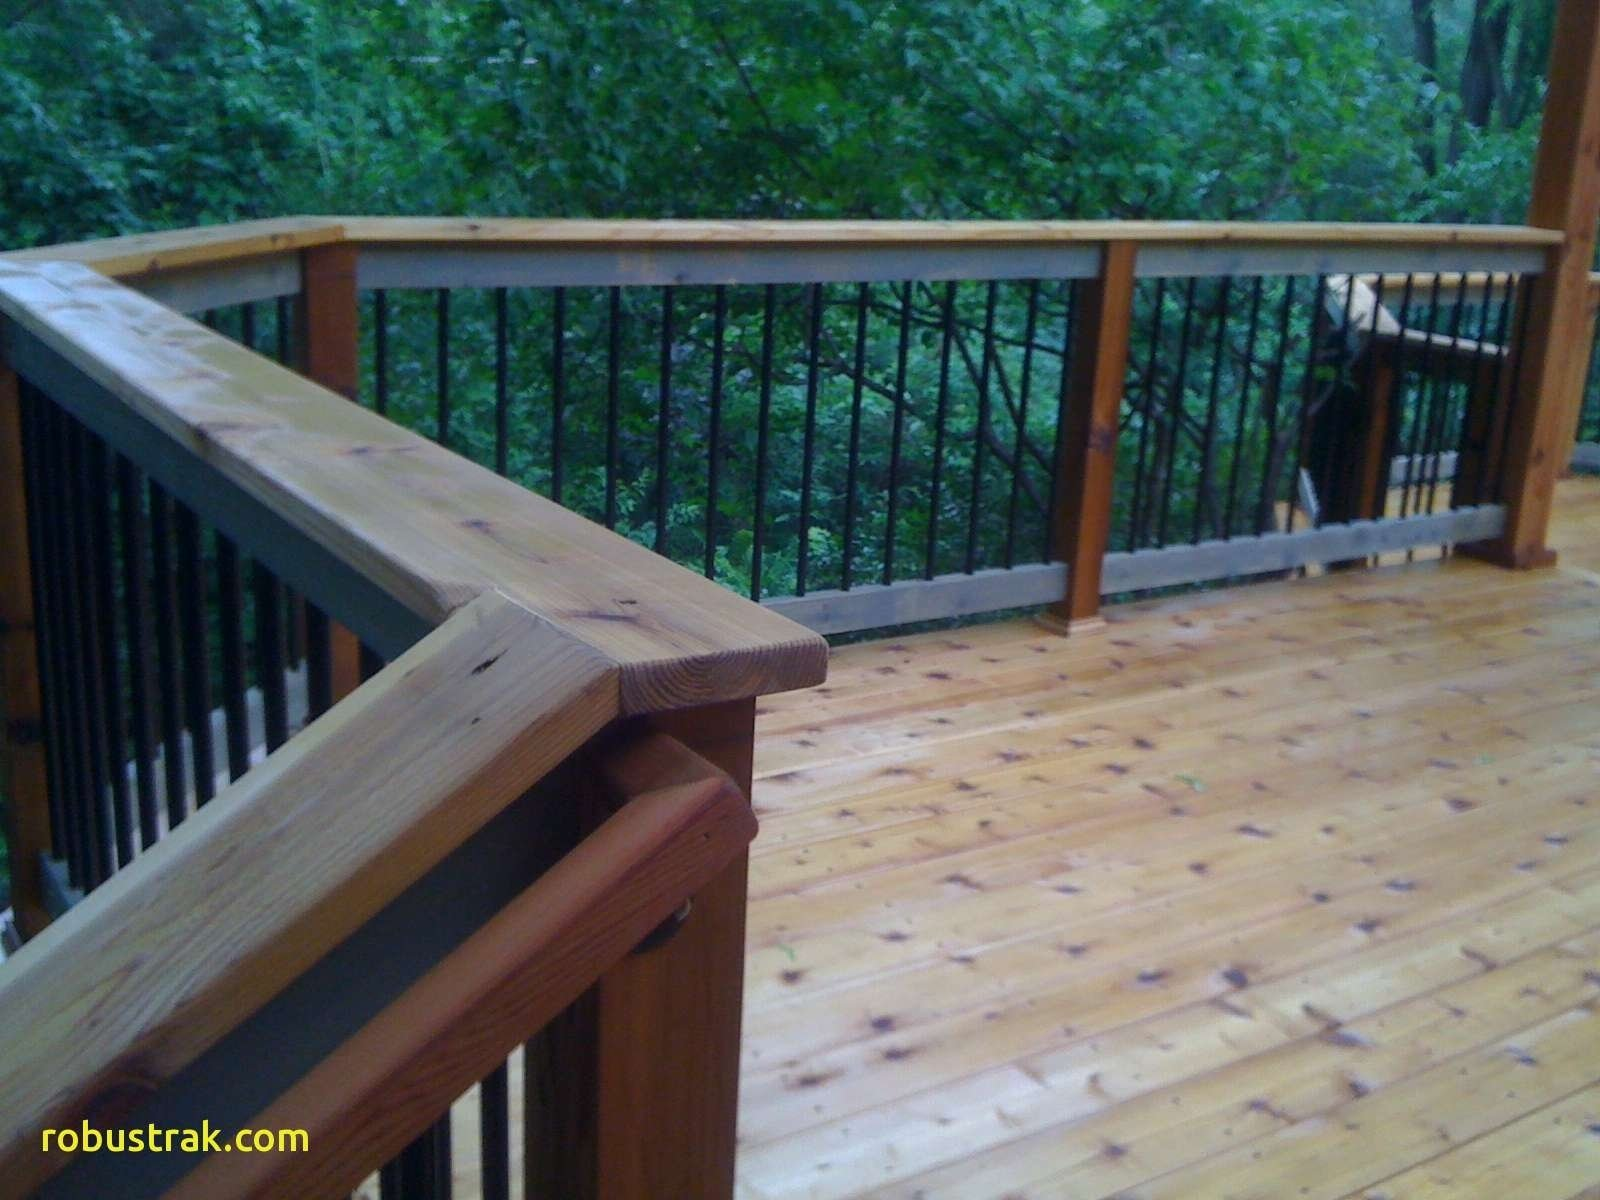 10 Spectacular Two Tone Deck Stain Ideas luxury two tone deck stain ideas home design ideas 2021